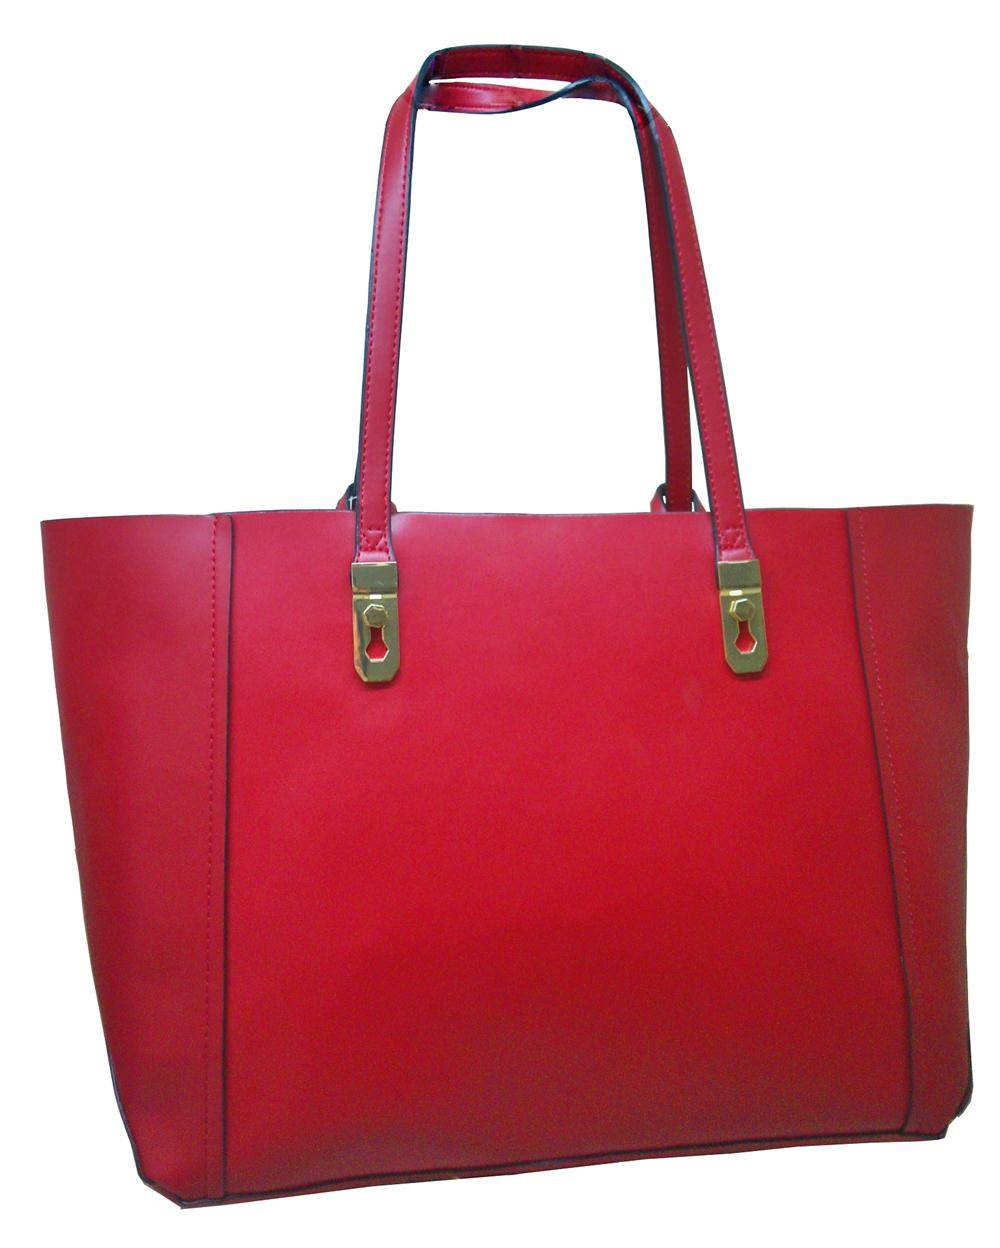 handbags-structured shopper BQ16076